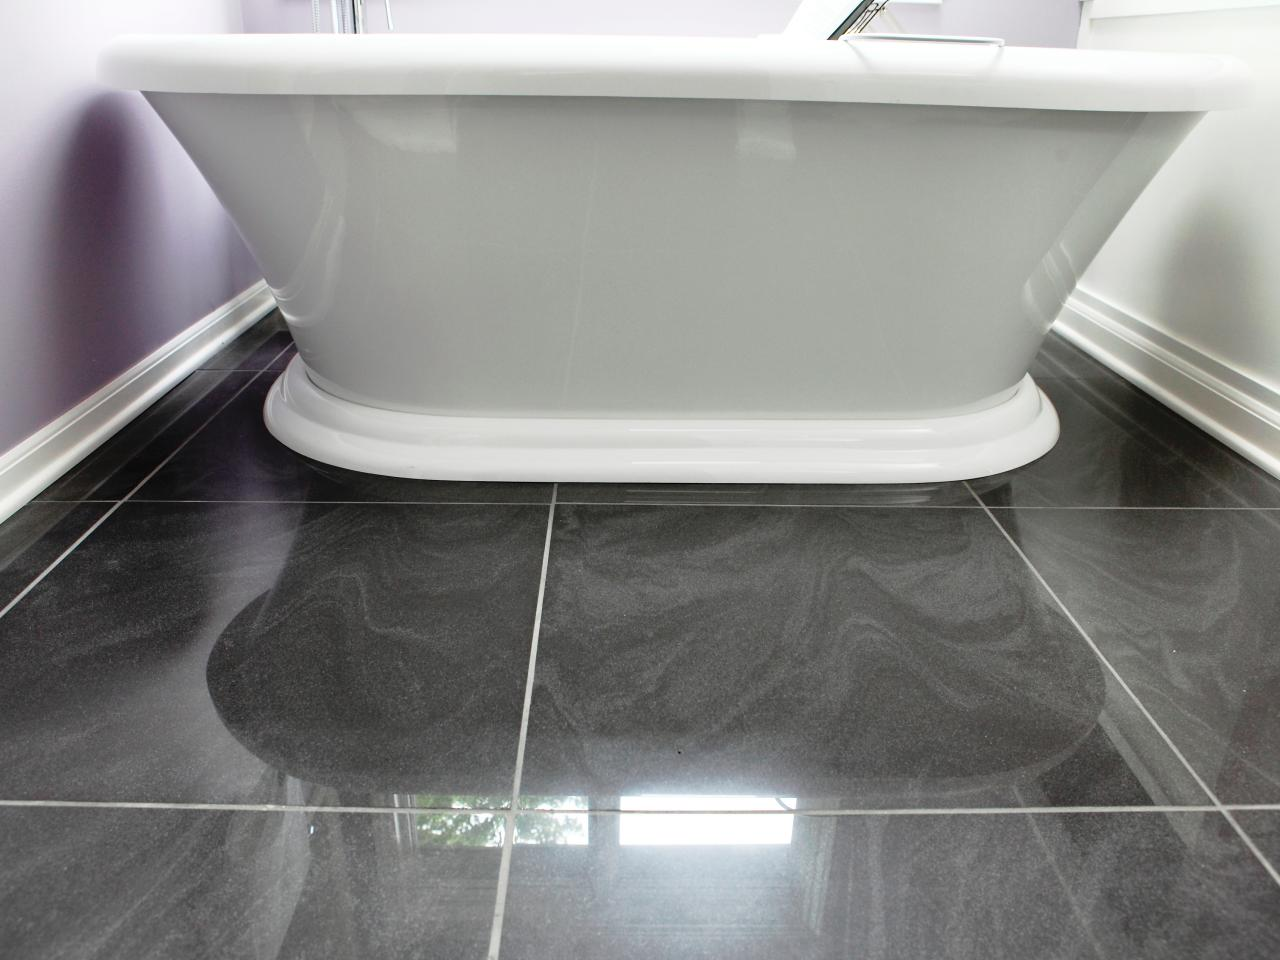 Featured in bath crashers episode blinged out glamour for Bathroom flooring ideas small bathroom